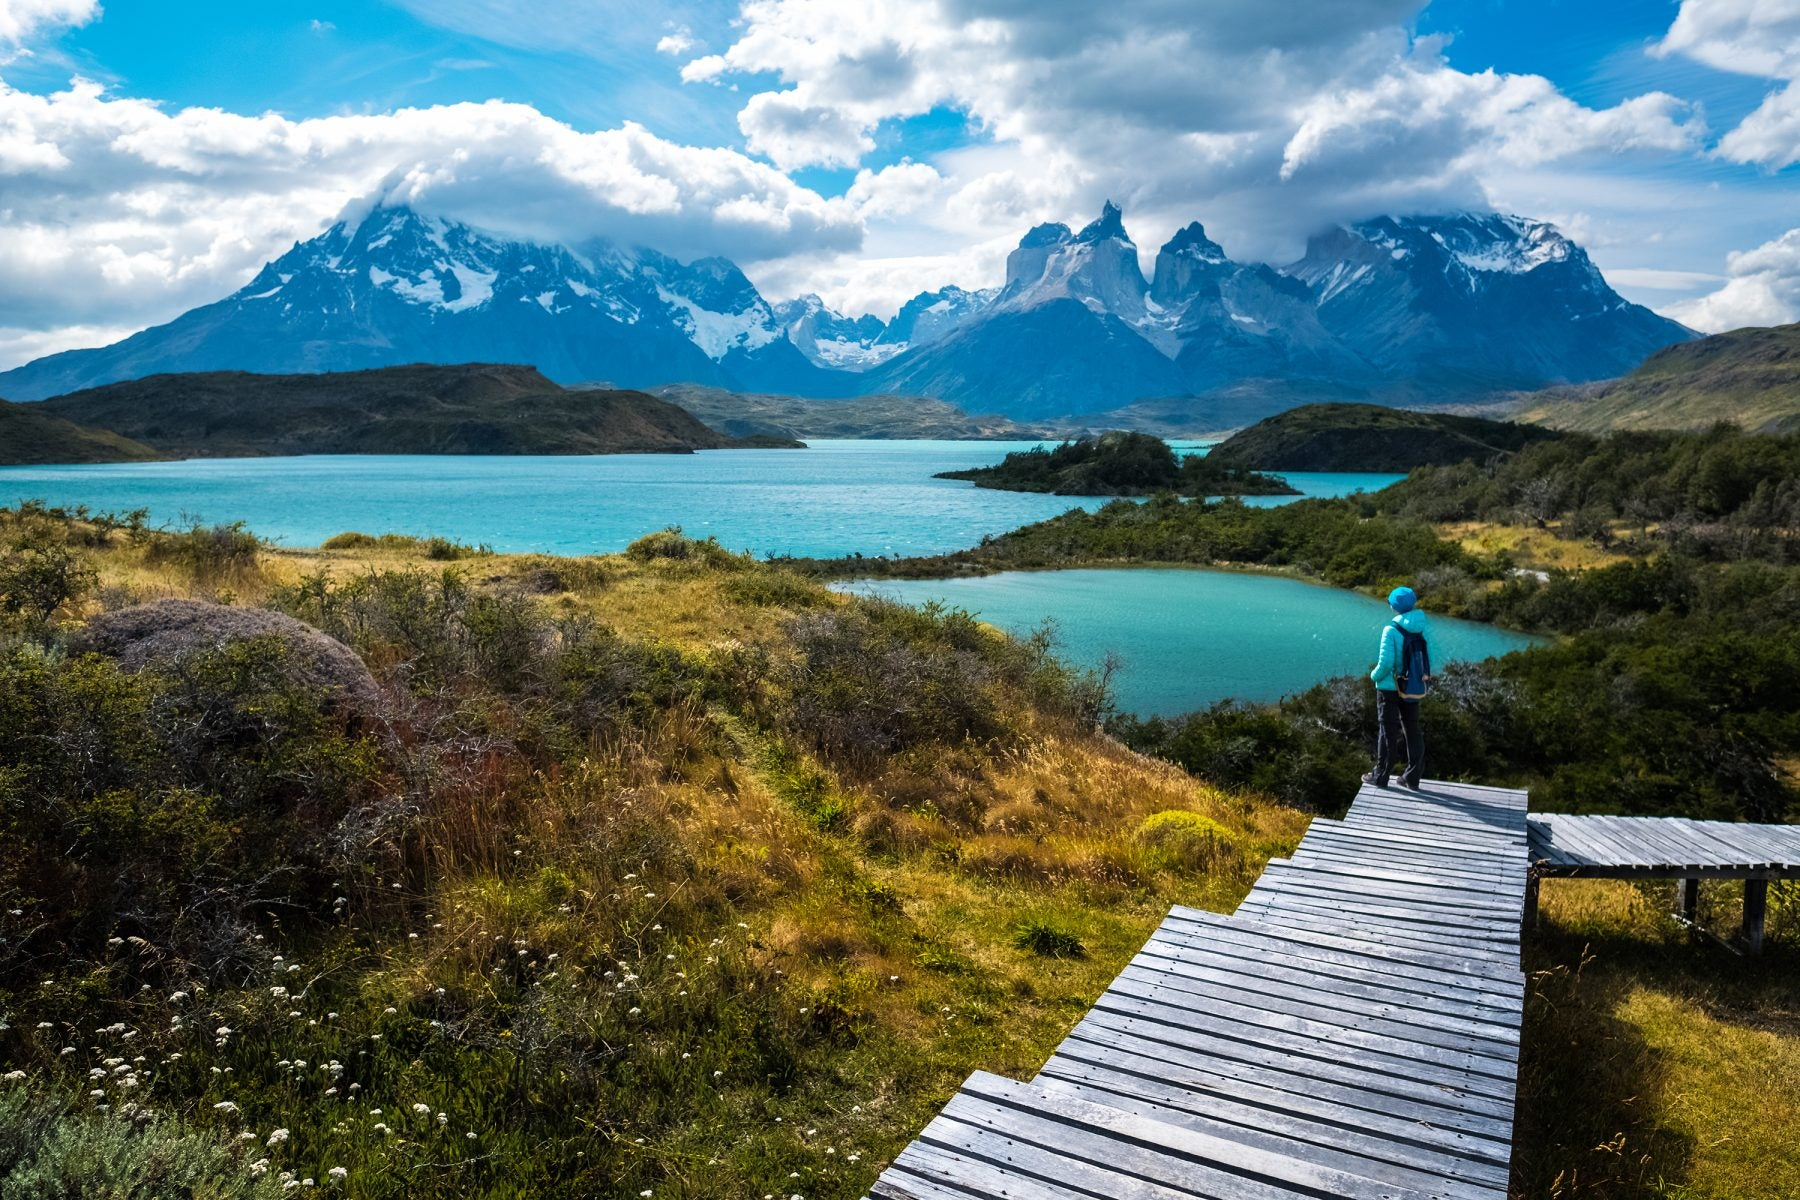 From the TOP of Europe to the BOTTOM of South America (and Everywhere In-Between), Here's Why the Limited-Time United Airlines Explorer Offer Is SO Much Better (Ends May 16, 2019)